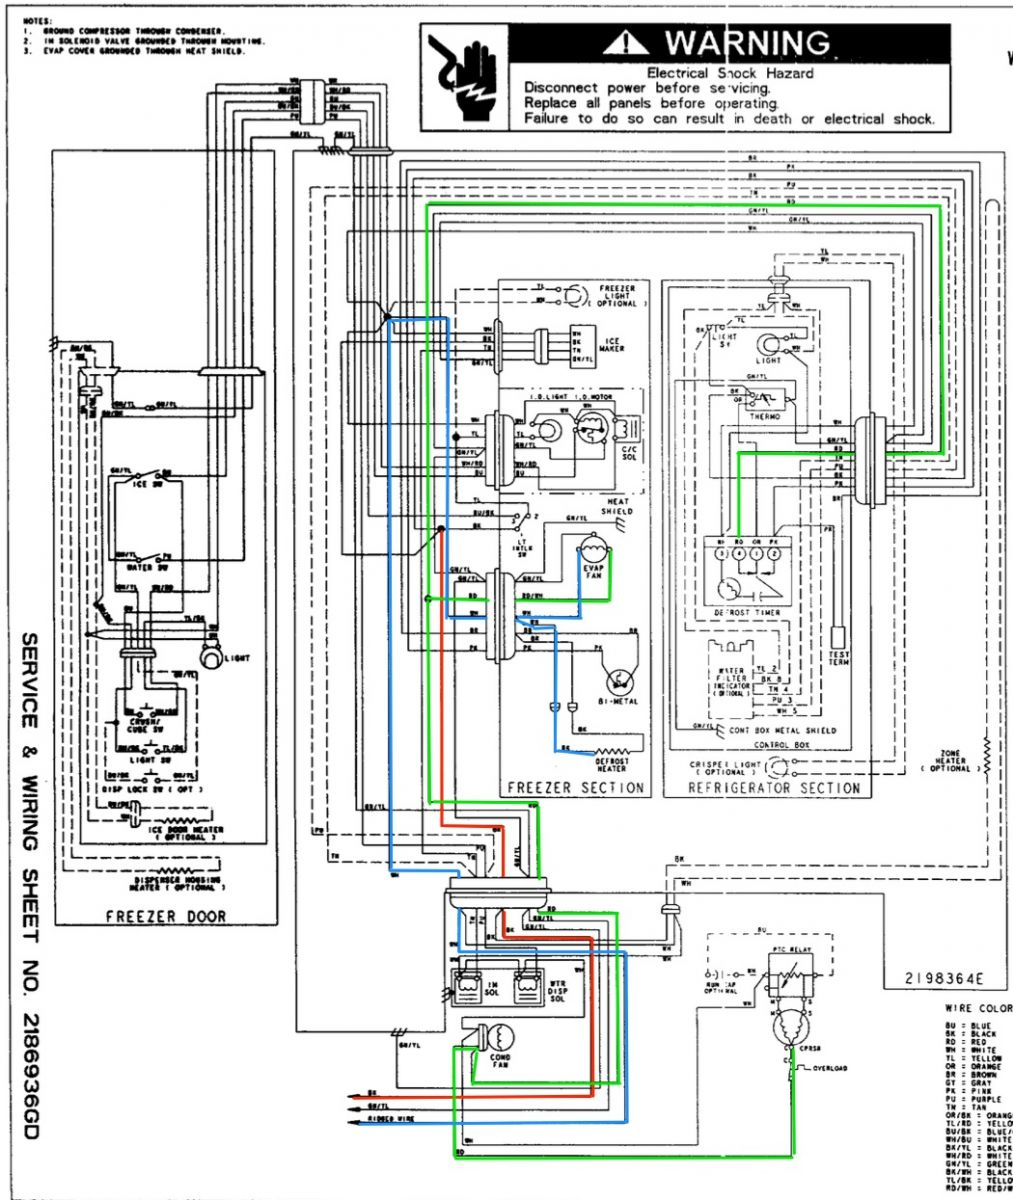 whirlpool ed25rfxfw01 refrigerator wiring diagram the rh appliantology org refrigerator wiring diagram parts refrigerator wiring diagram symbols explained